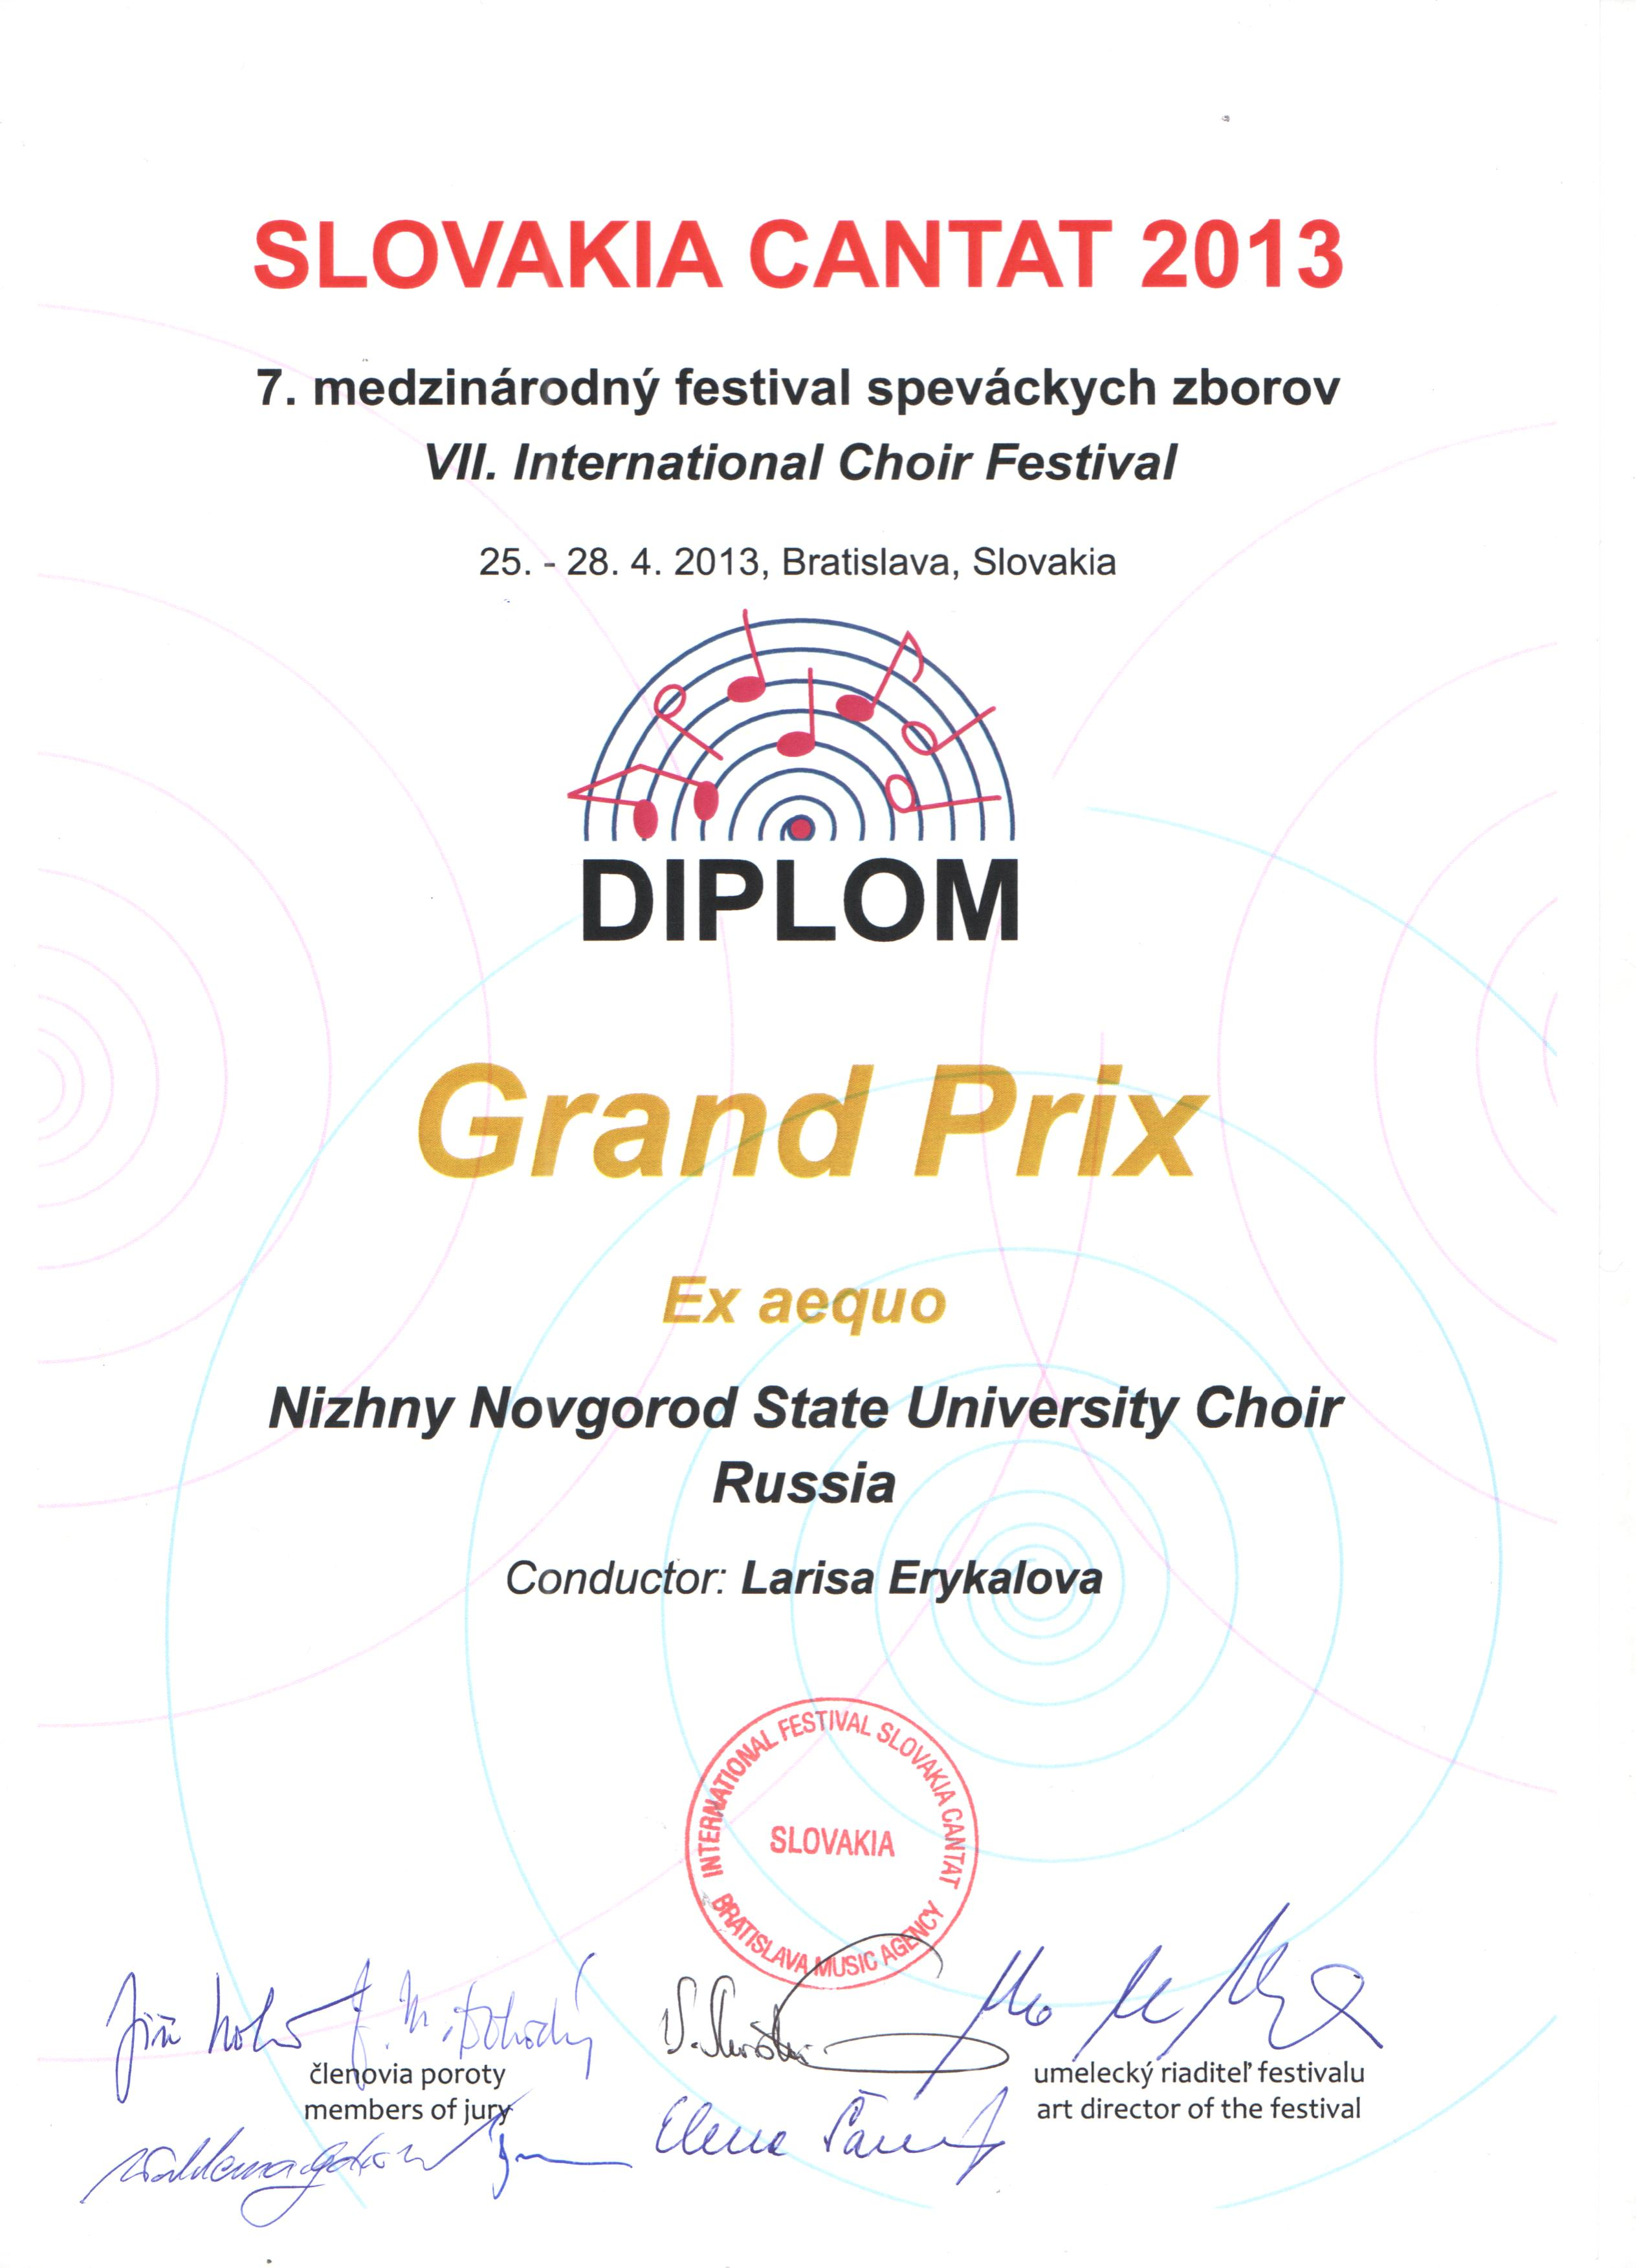 GRAND PRIX of the International Festival of Choral and